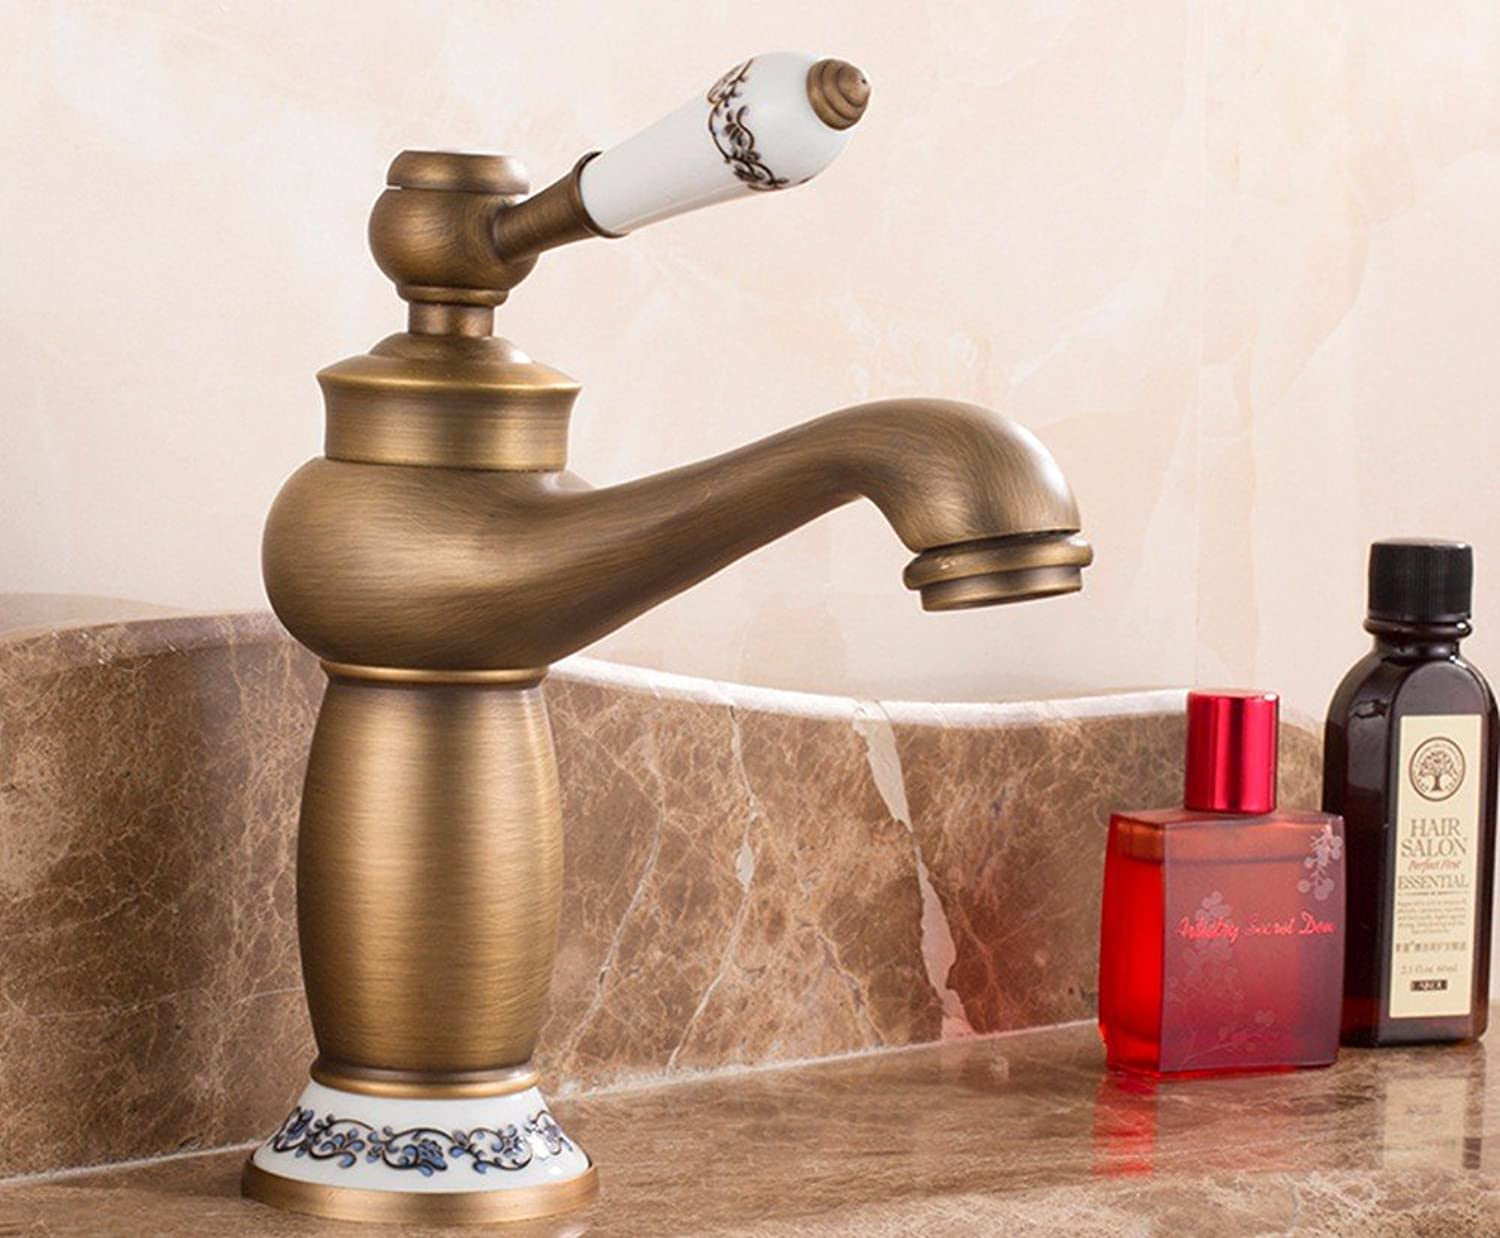 Hlluya Professional Sink Mixer Tap Kitchen Faucet The brass faucets antique basin surface basin of cold water taps,